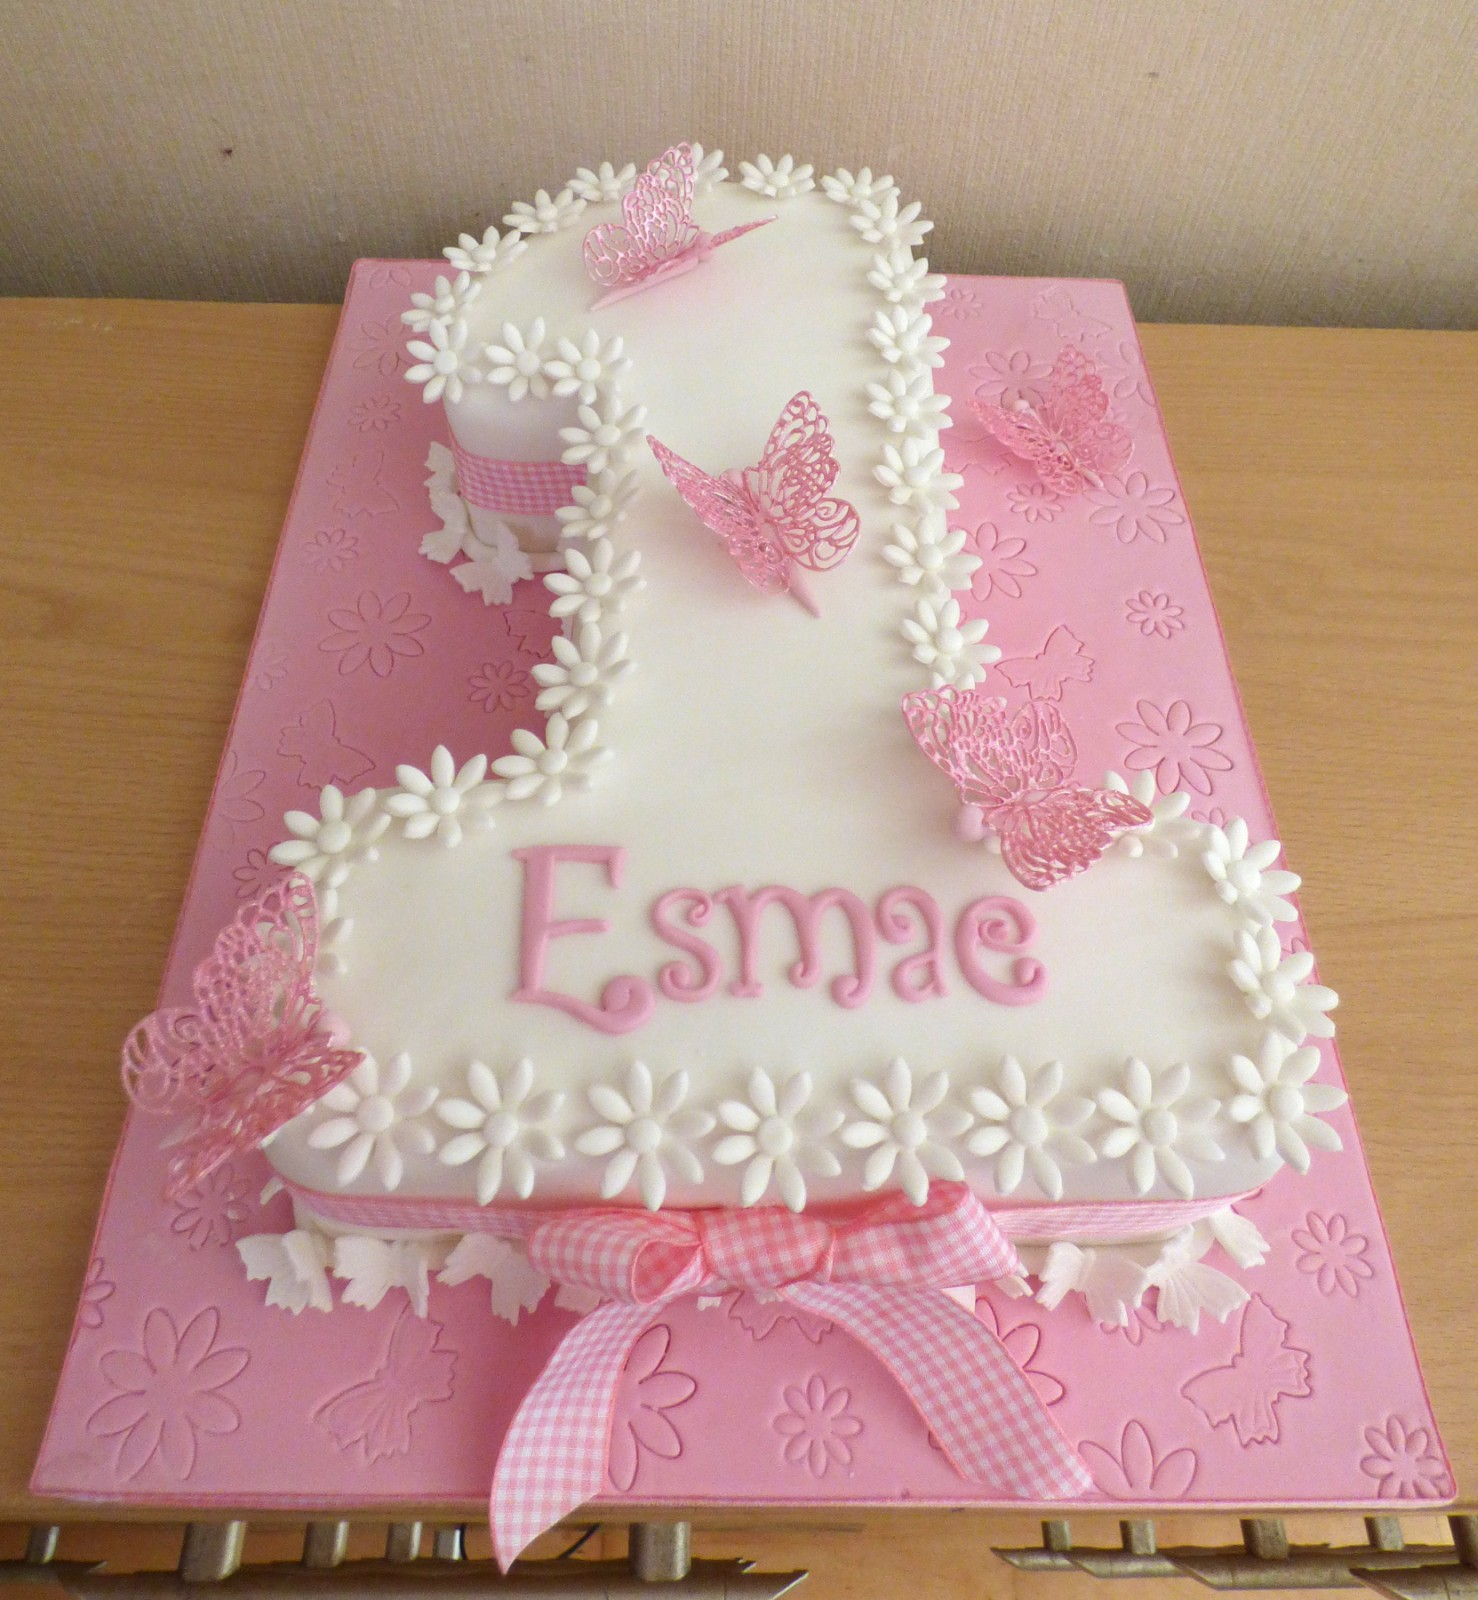 Pretty Number 1 Birthday Cake With Daisies And Butterflies This Is Found In Girls